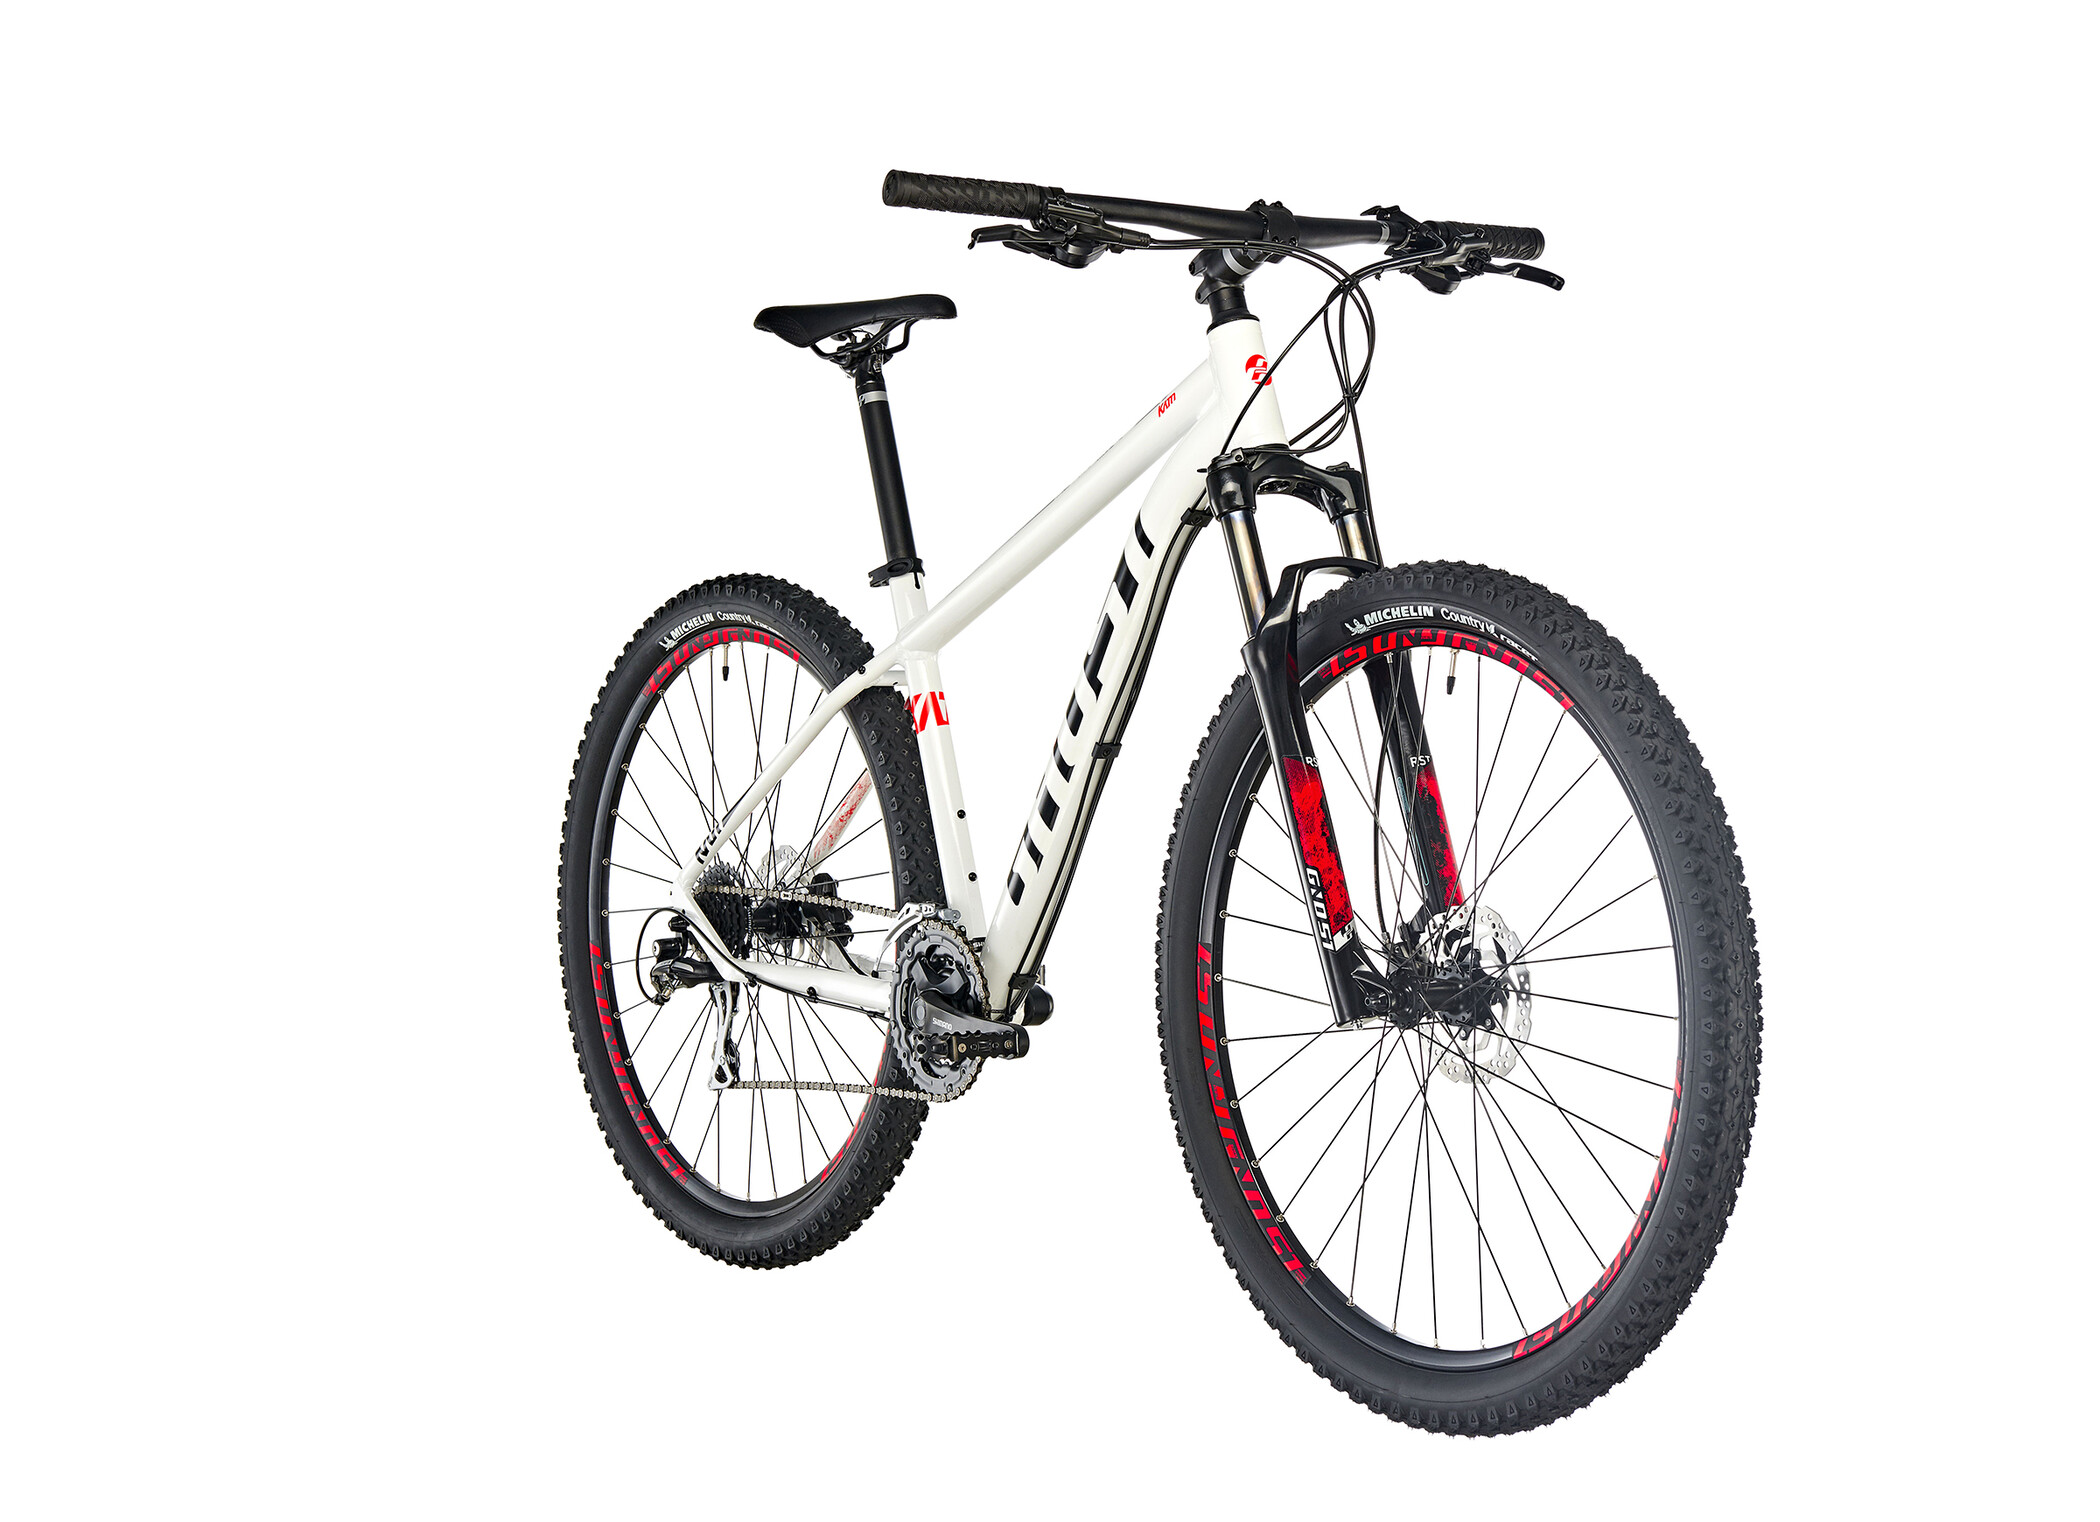 "Ghost Kato 3.9 AL 29"", star white/night black/fiery red (2019) 